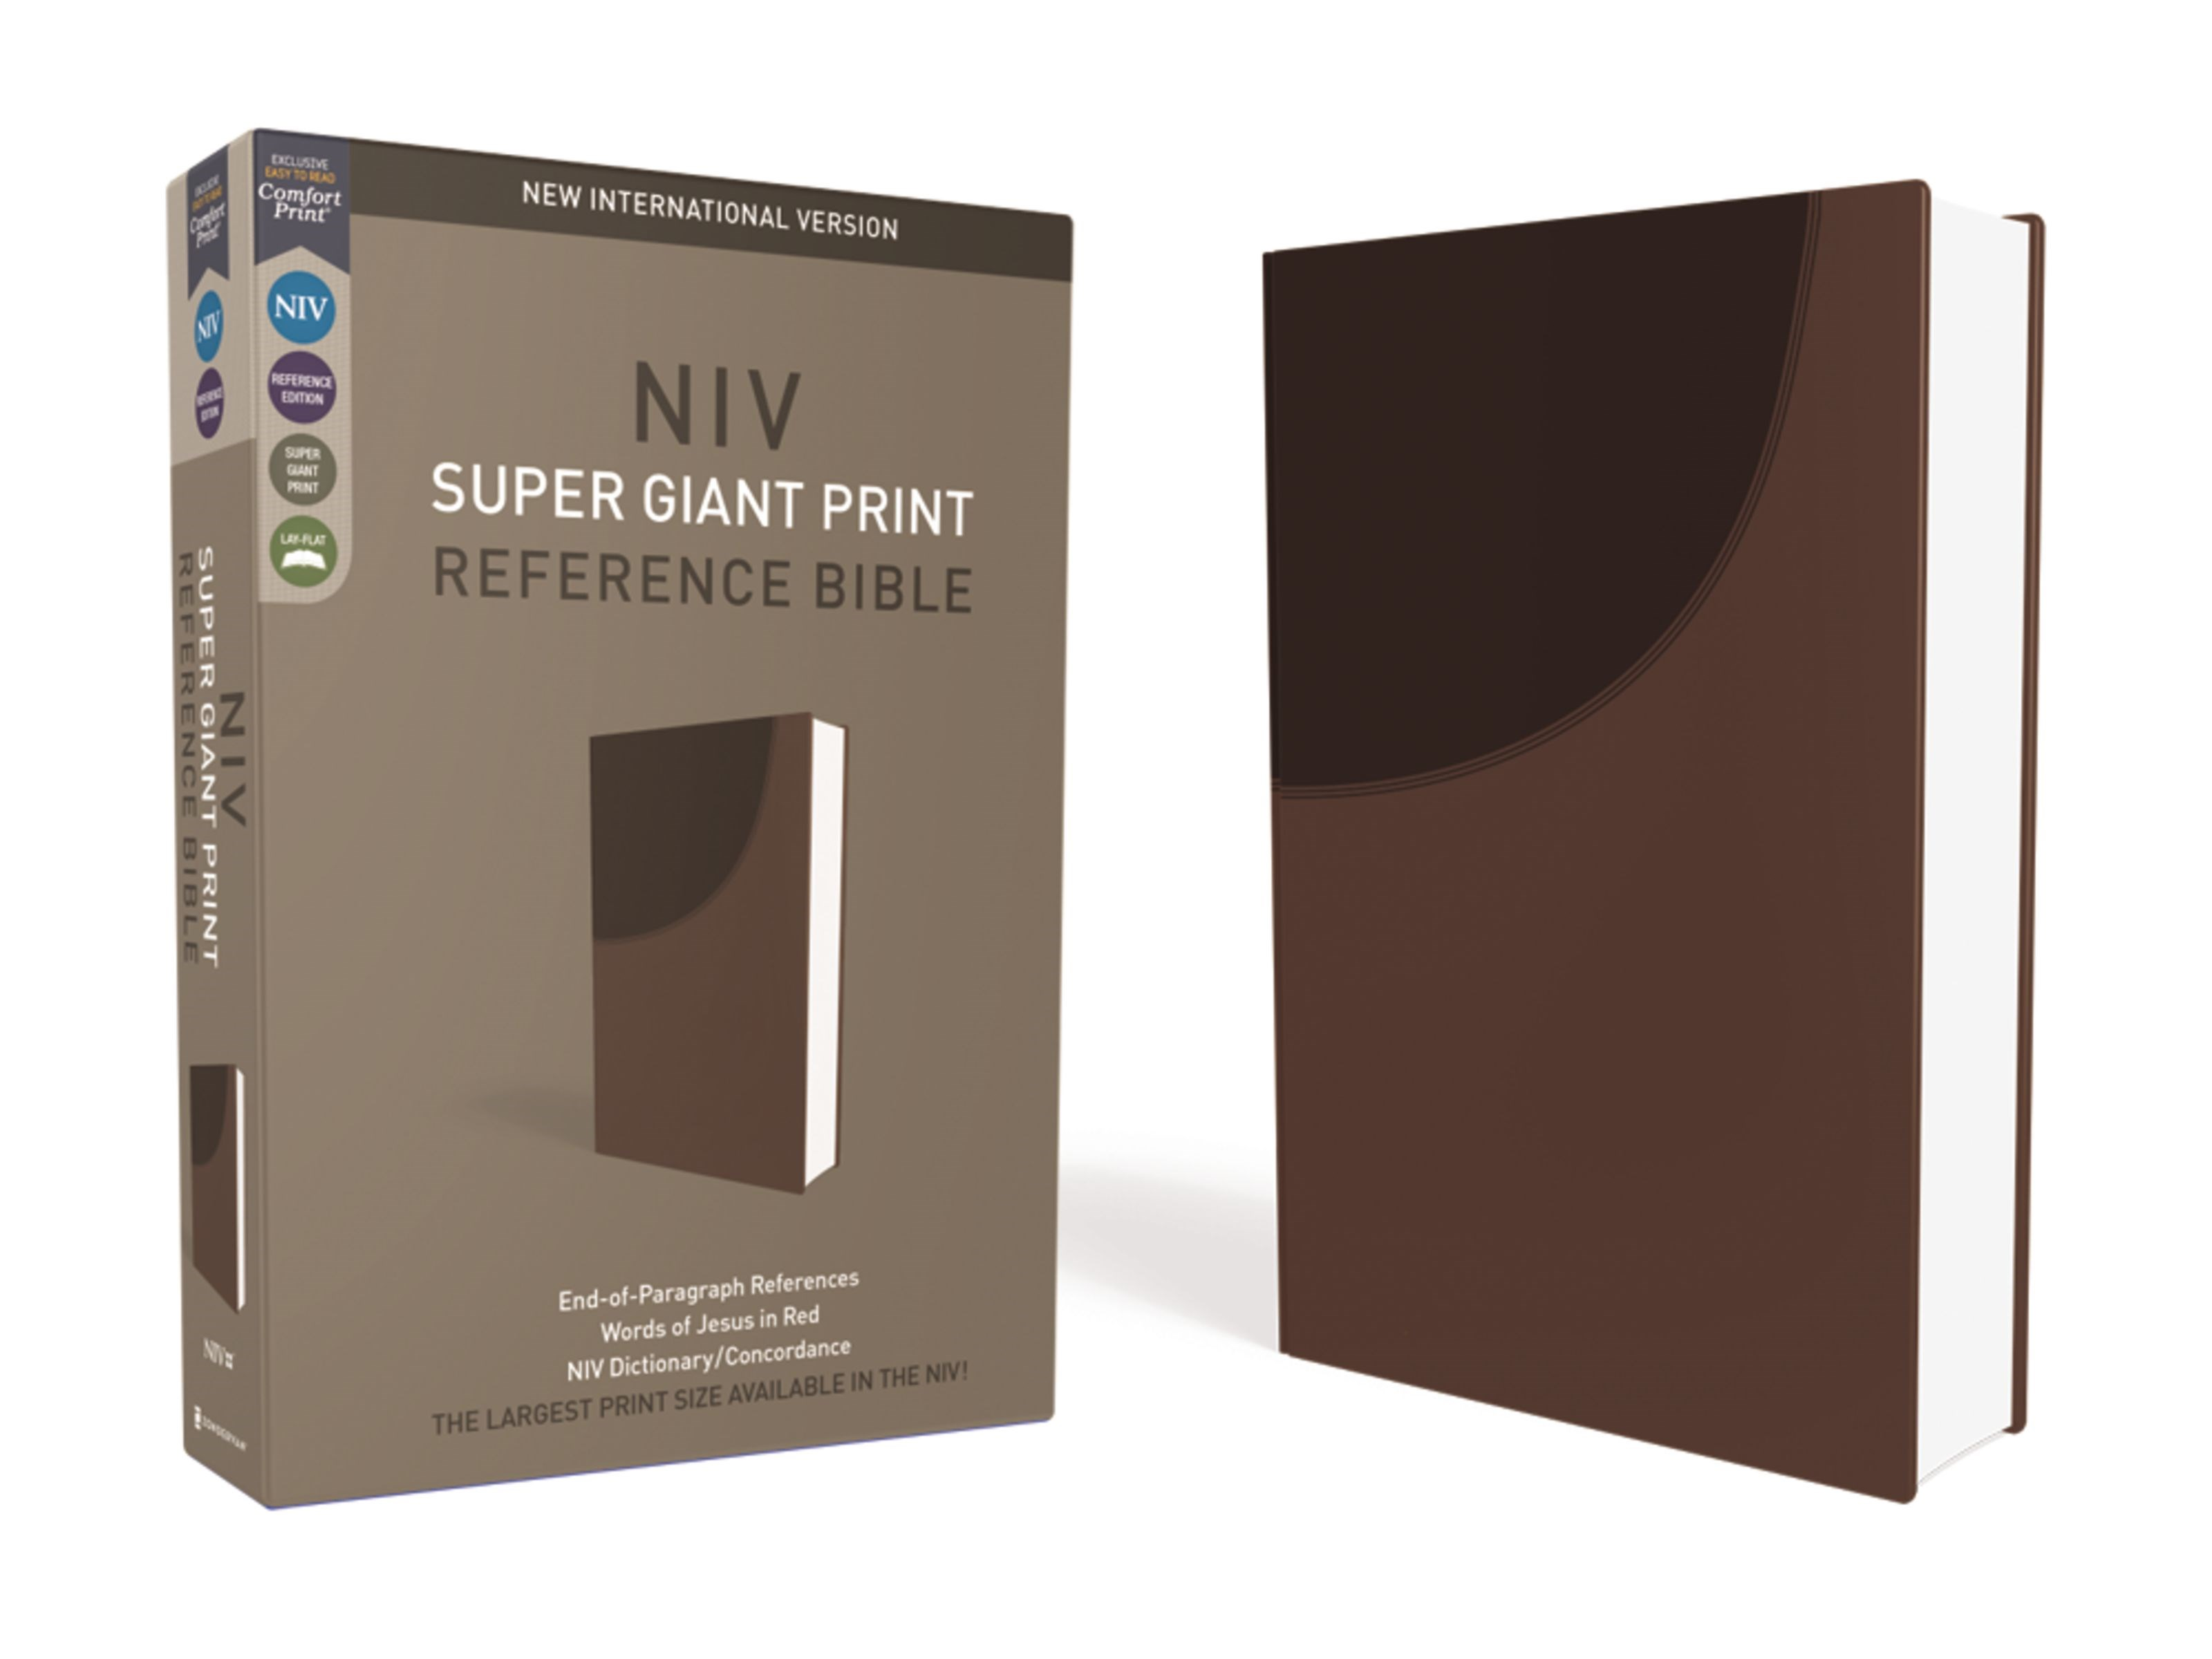 NIV Super Giant Print Reference Bible-Chocolate Leathersoft